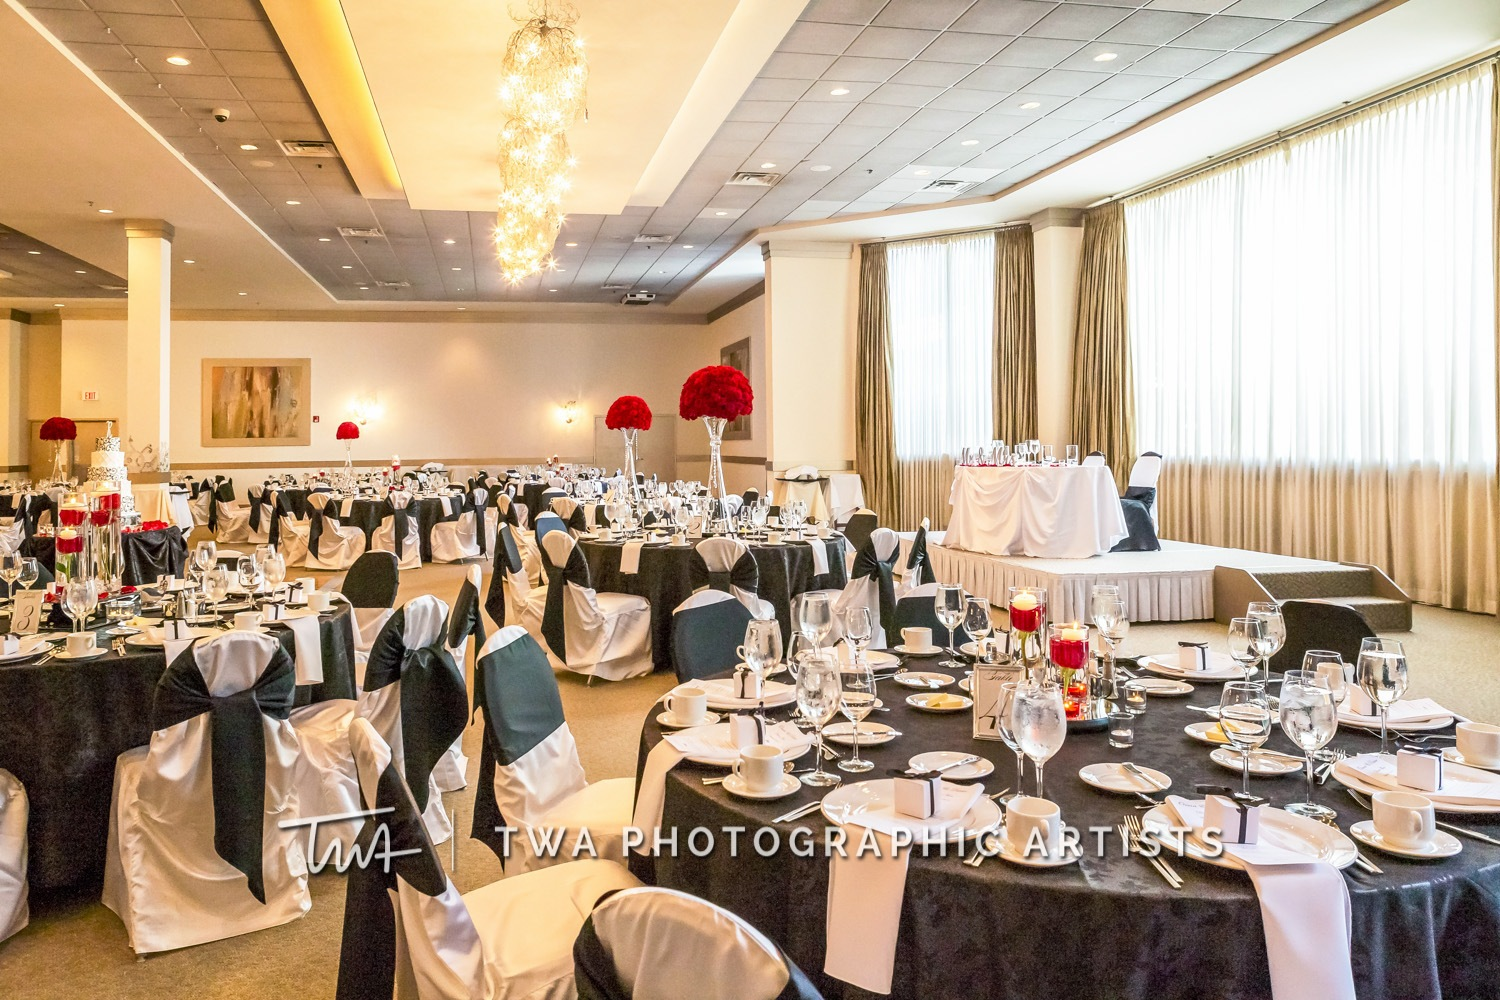 Chicago-Wedding-Photographer-TWA-Photographic-Artists-Belvedere-Banquets_Chambers_Robinson_MiC-0395